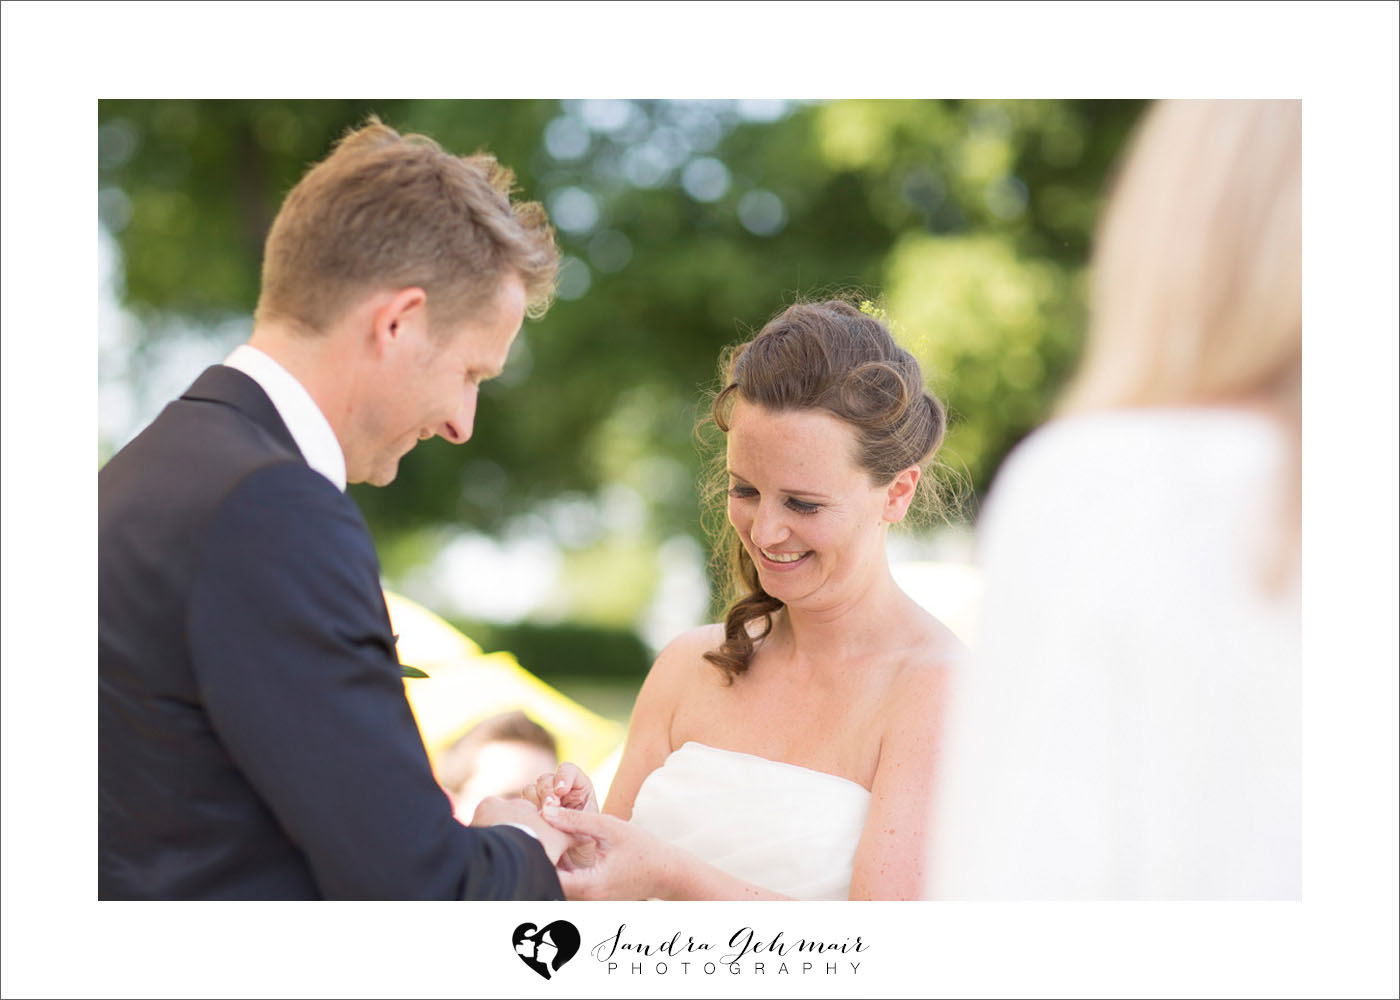 031_heiraten_am_see_spitzvilla_sandra_gehmair